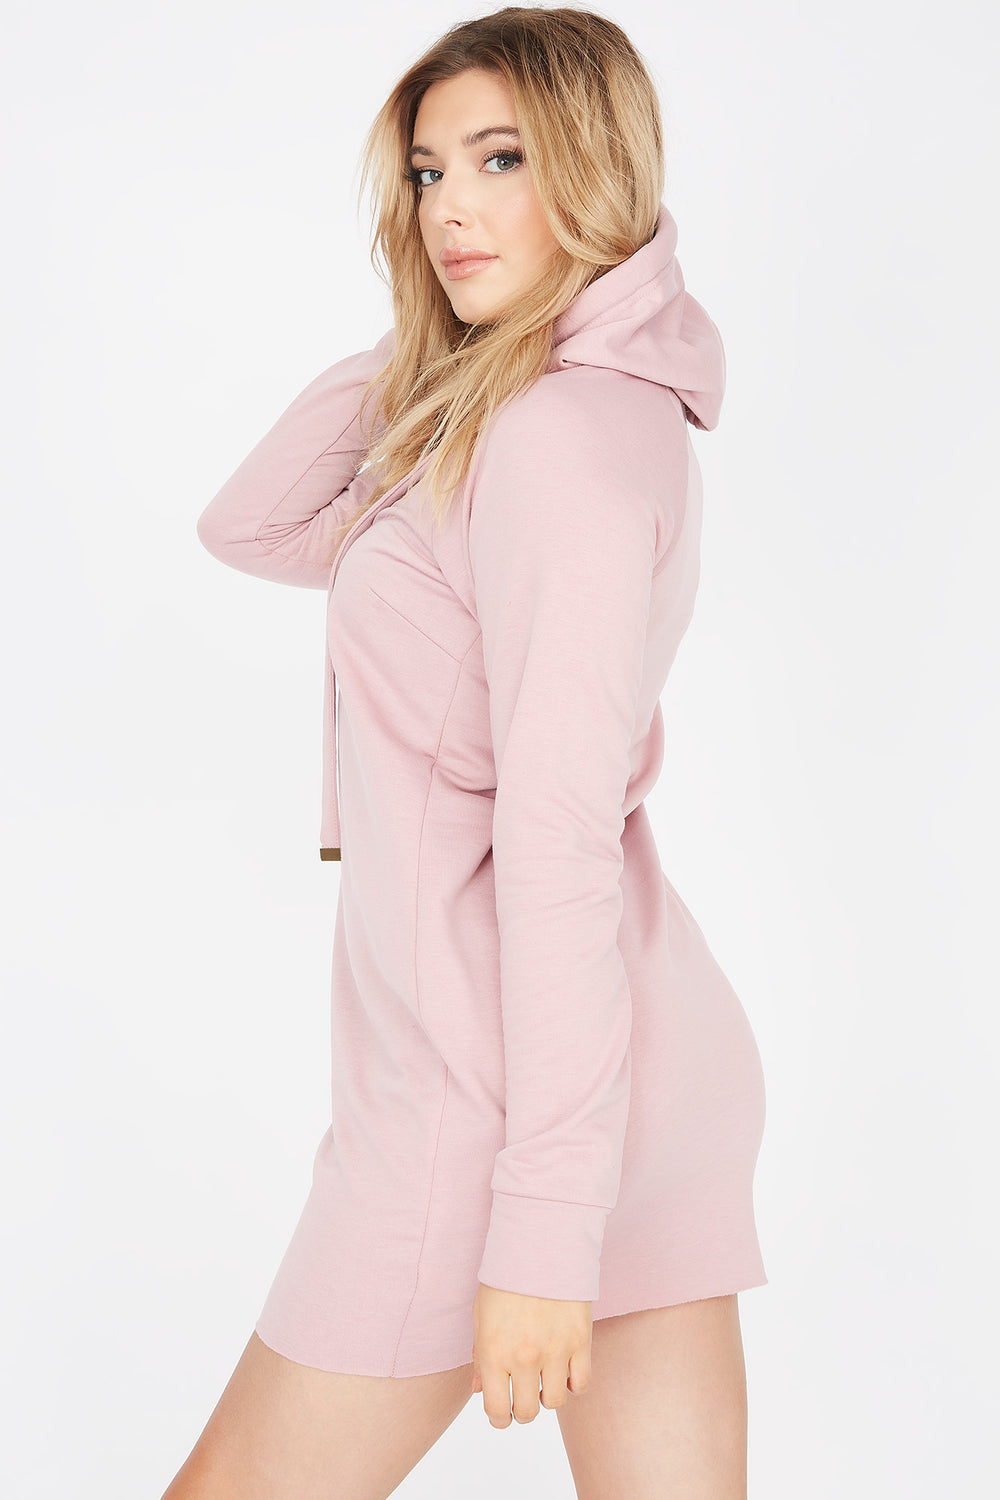 2-Piece Soft Fleece Hoodie Dress With Washable & Reusable Protective Face Mask Set Mauve